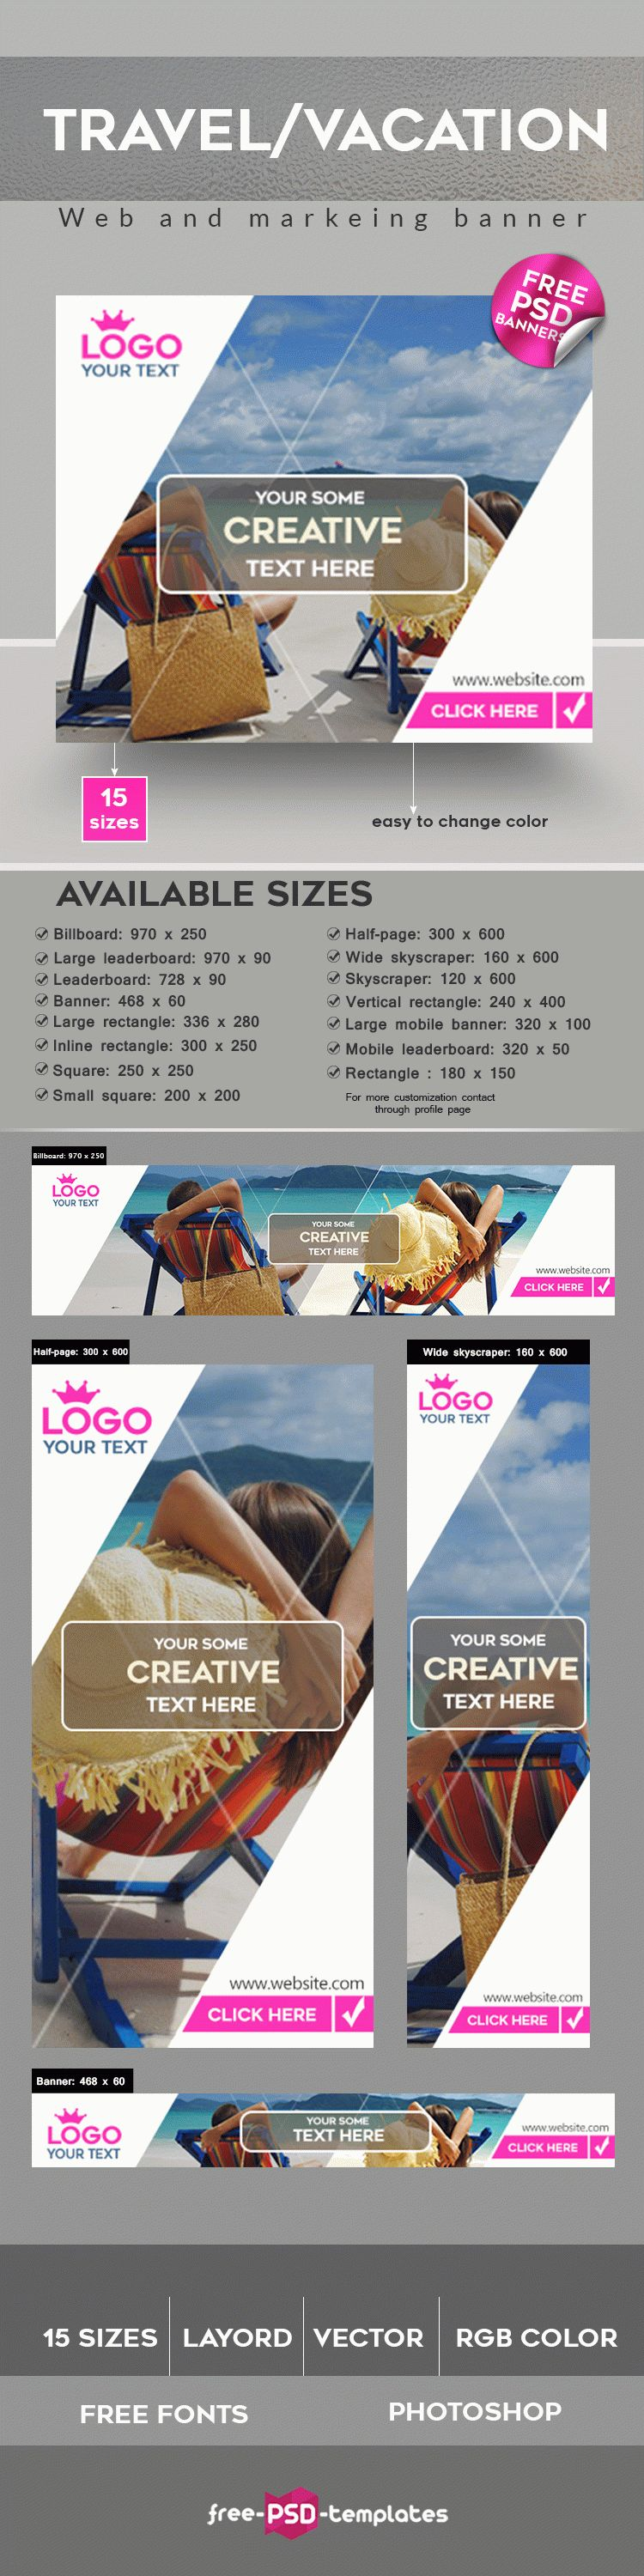 FREE Travel / Vacation Banner IN PSD   Free PSD Templates